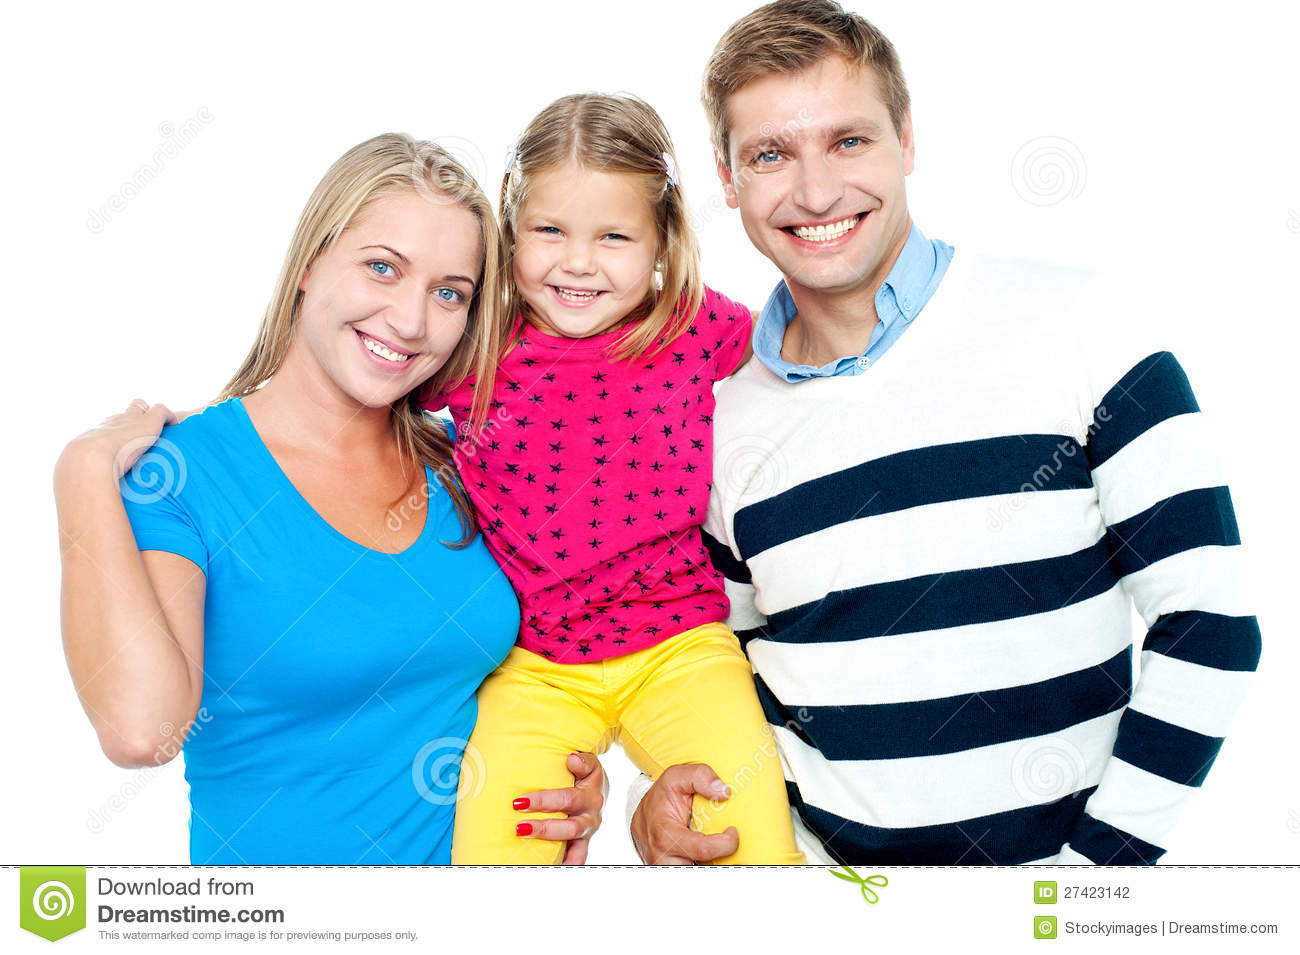 Family portrait on a white background